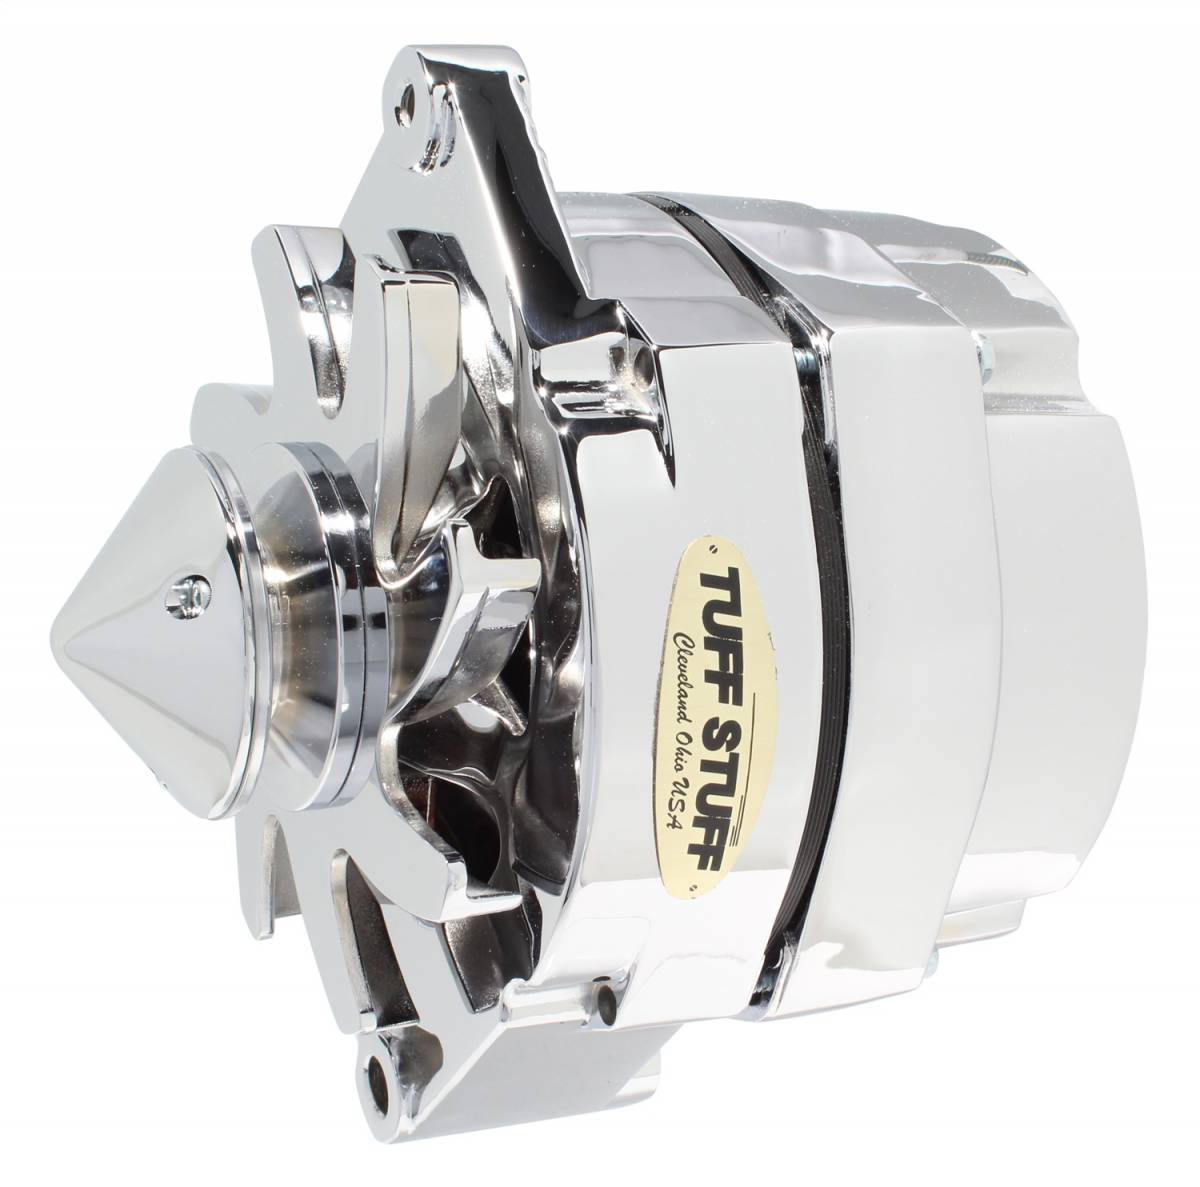 Tuff Stuff Performance - Silver Bullet Alternator 140 AMP OEM Or 1 Wire V Groove Pulley 4.85 in. Case Depth Lower Mount Boss 2 in. Long Polished 7140BBULL